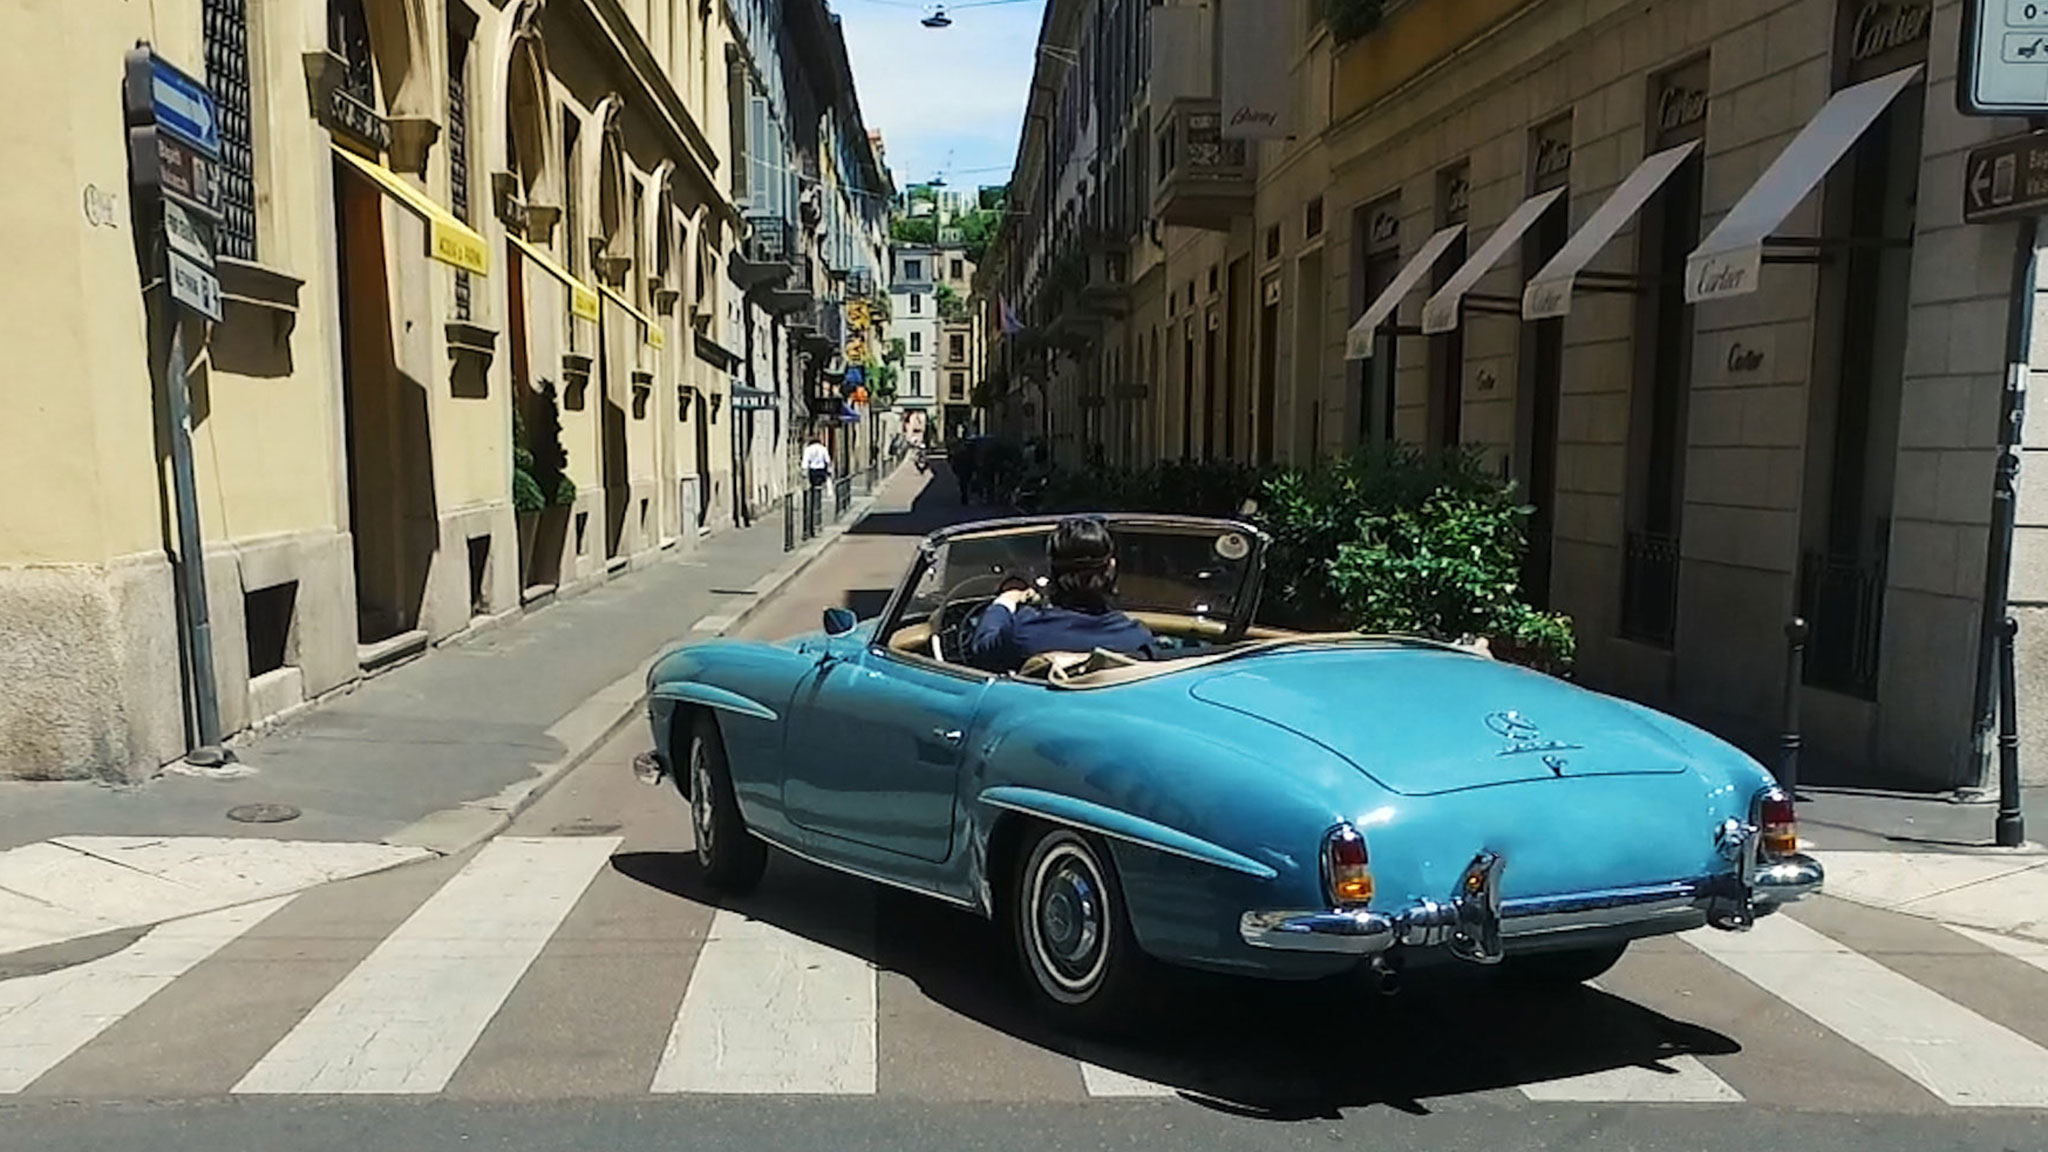 Vroom with a view: across Italy in a classic car